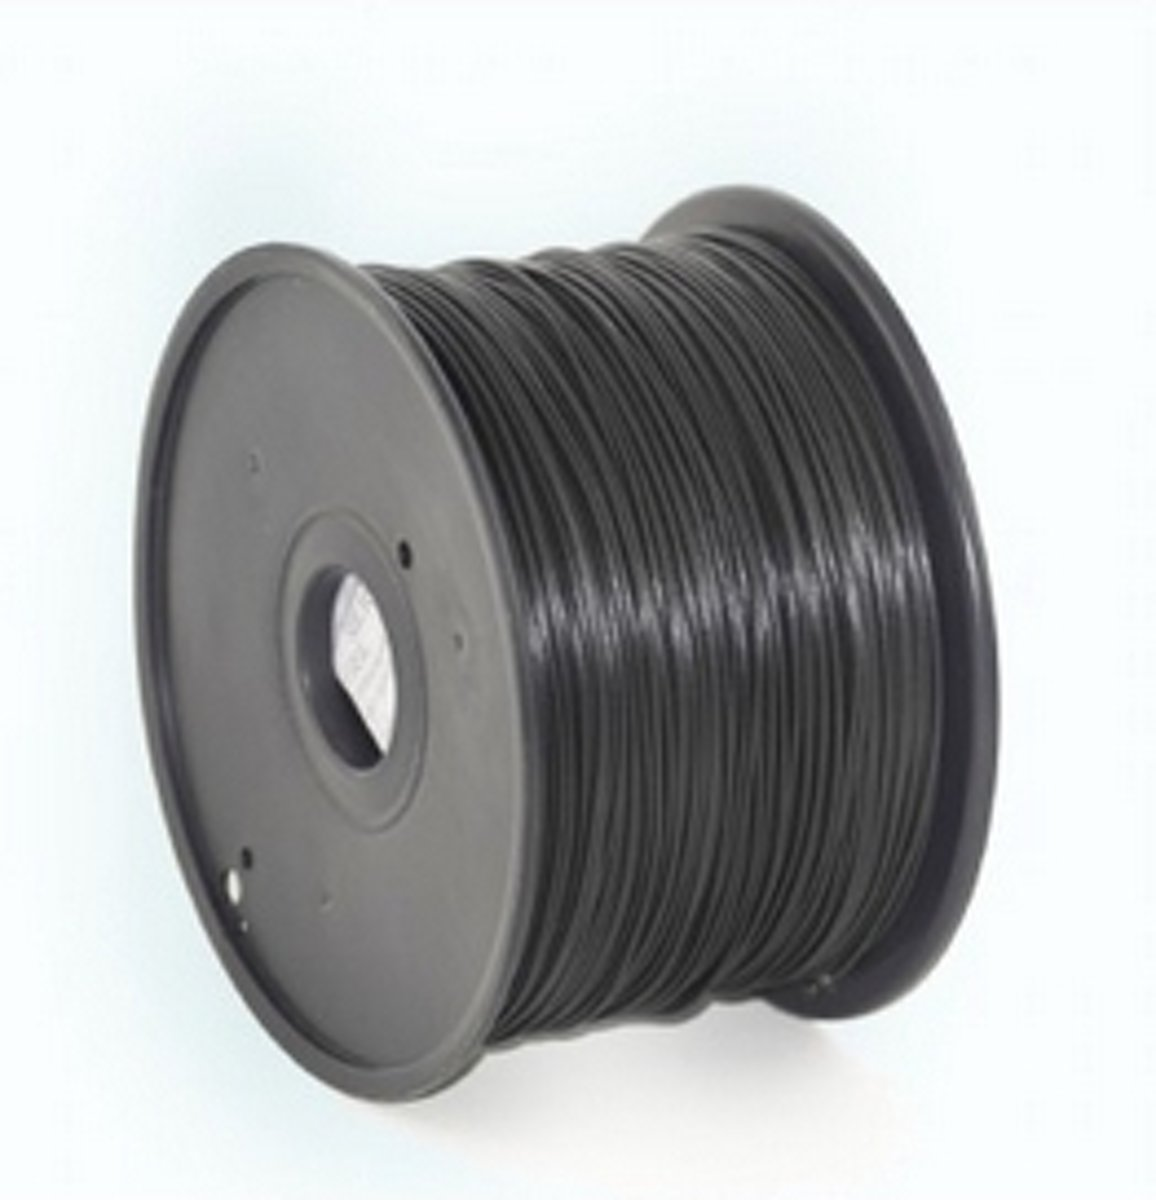 Gembird3 3DP-ABS1.75-01-BK - Filament ABS, 1.75 mm, zwart